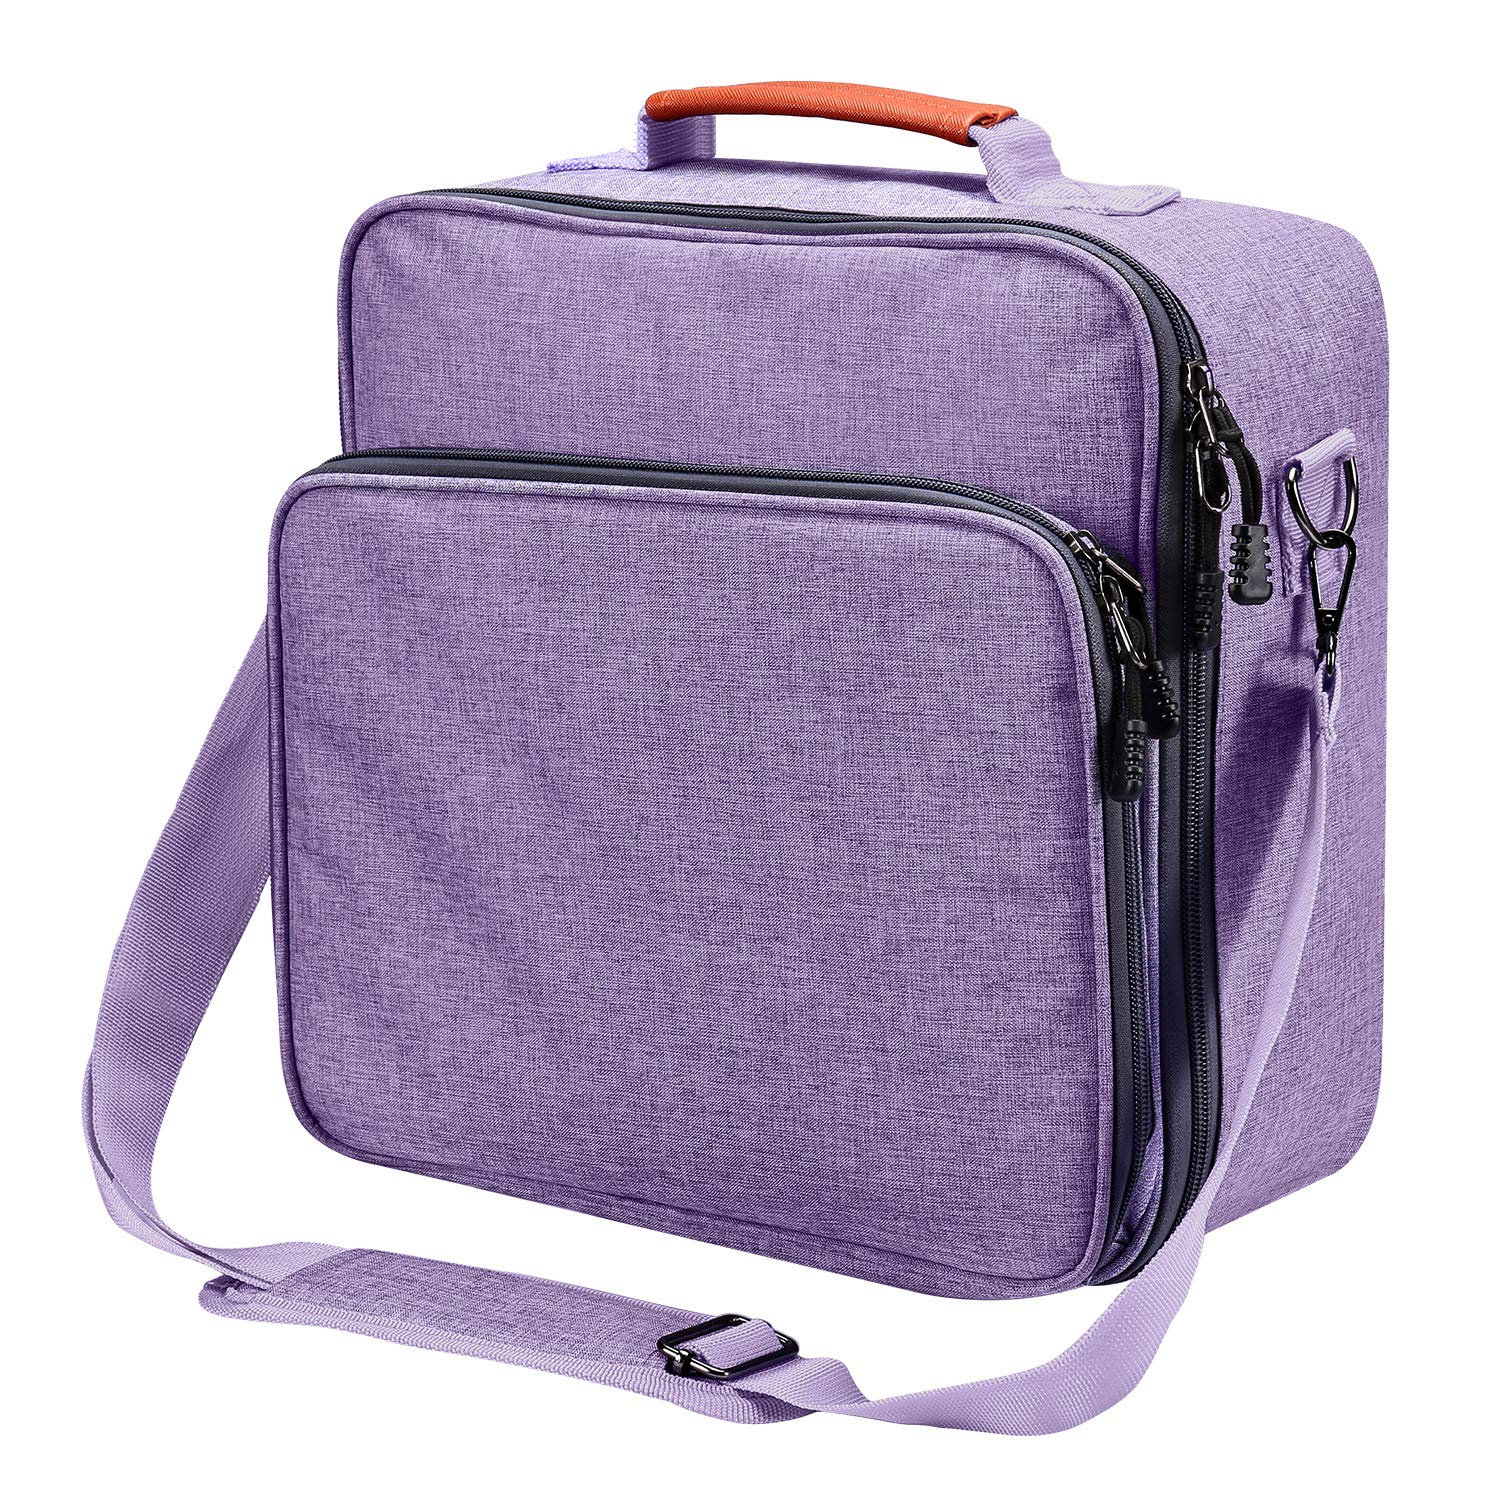 9 inches x 9 inches Carrying Bag Compatible with Cricut Easy Press Grey Tote Bag Cricut Accessories Carrying Case for Easy Press